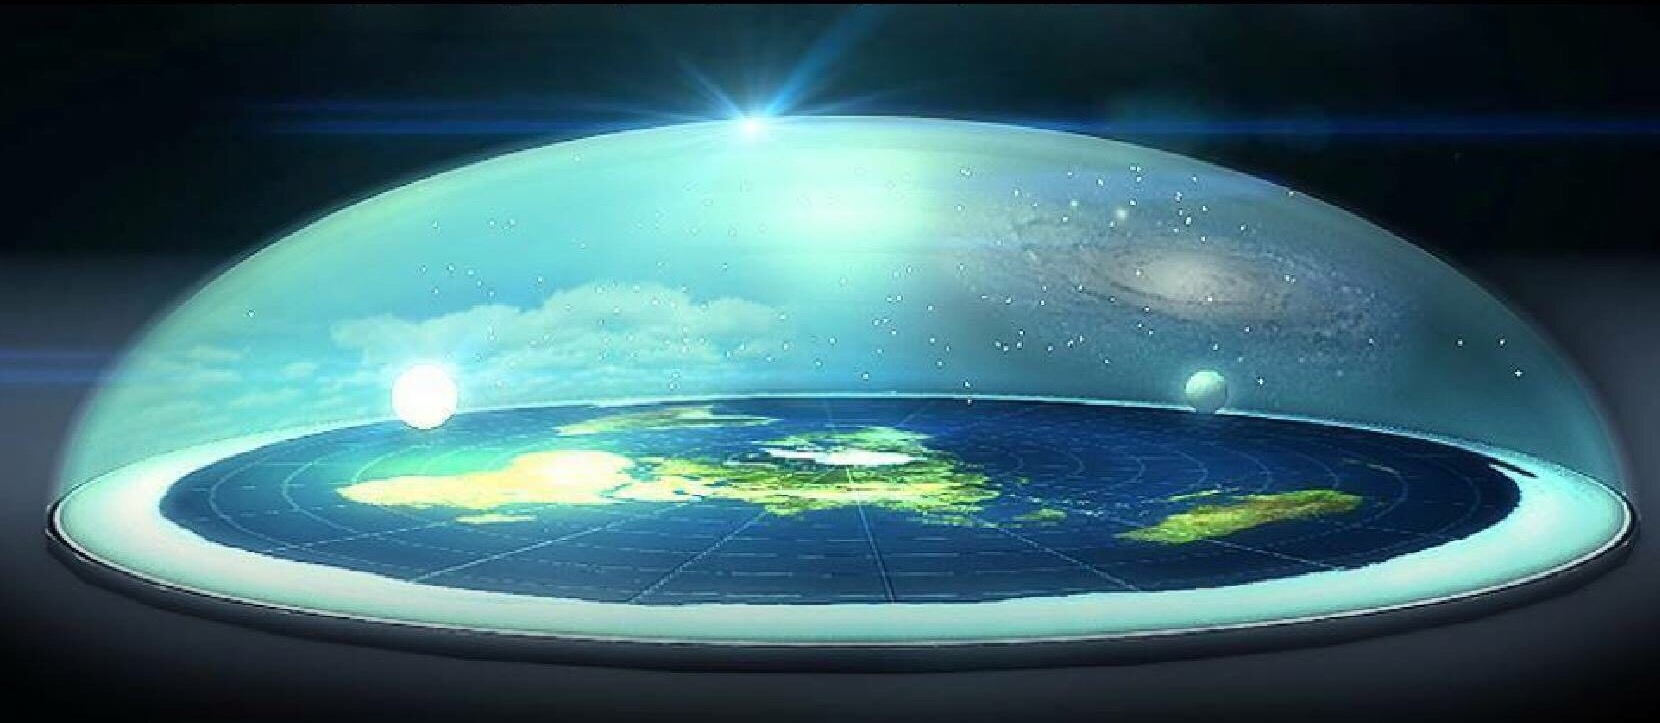 dome flat earth.jpg